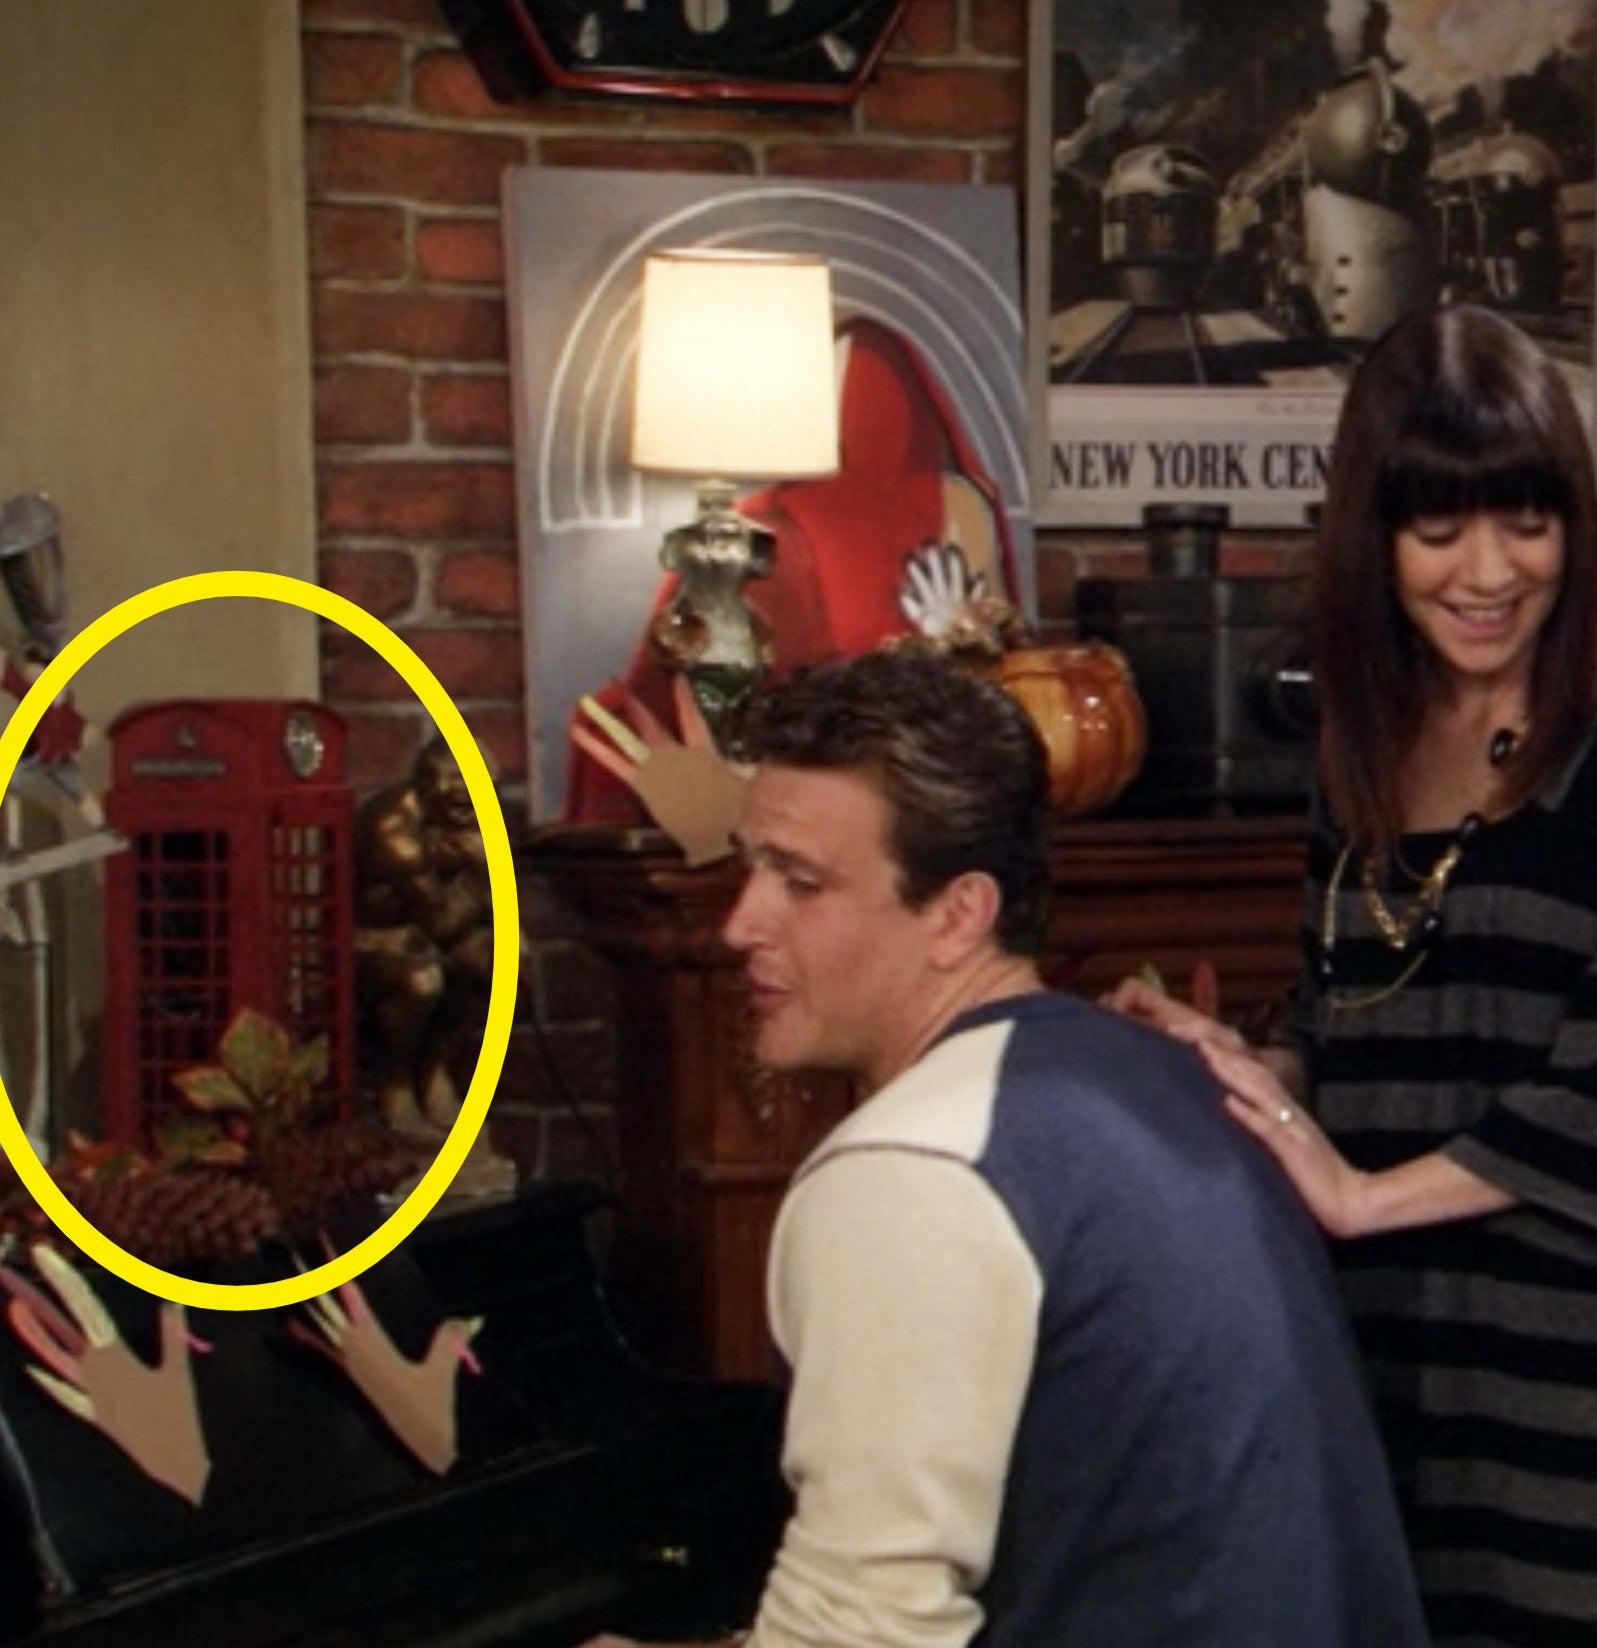 A circle showing the red phone booth in How I Met Your Mother